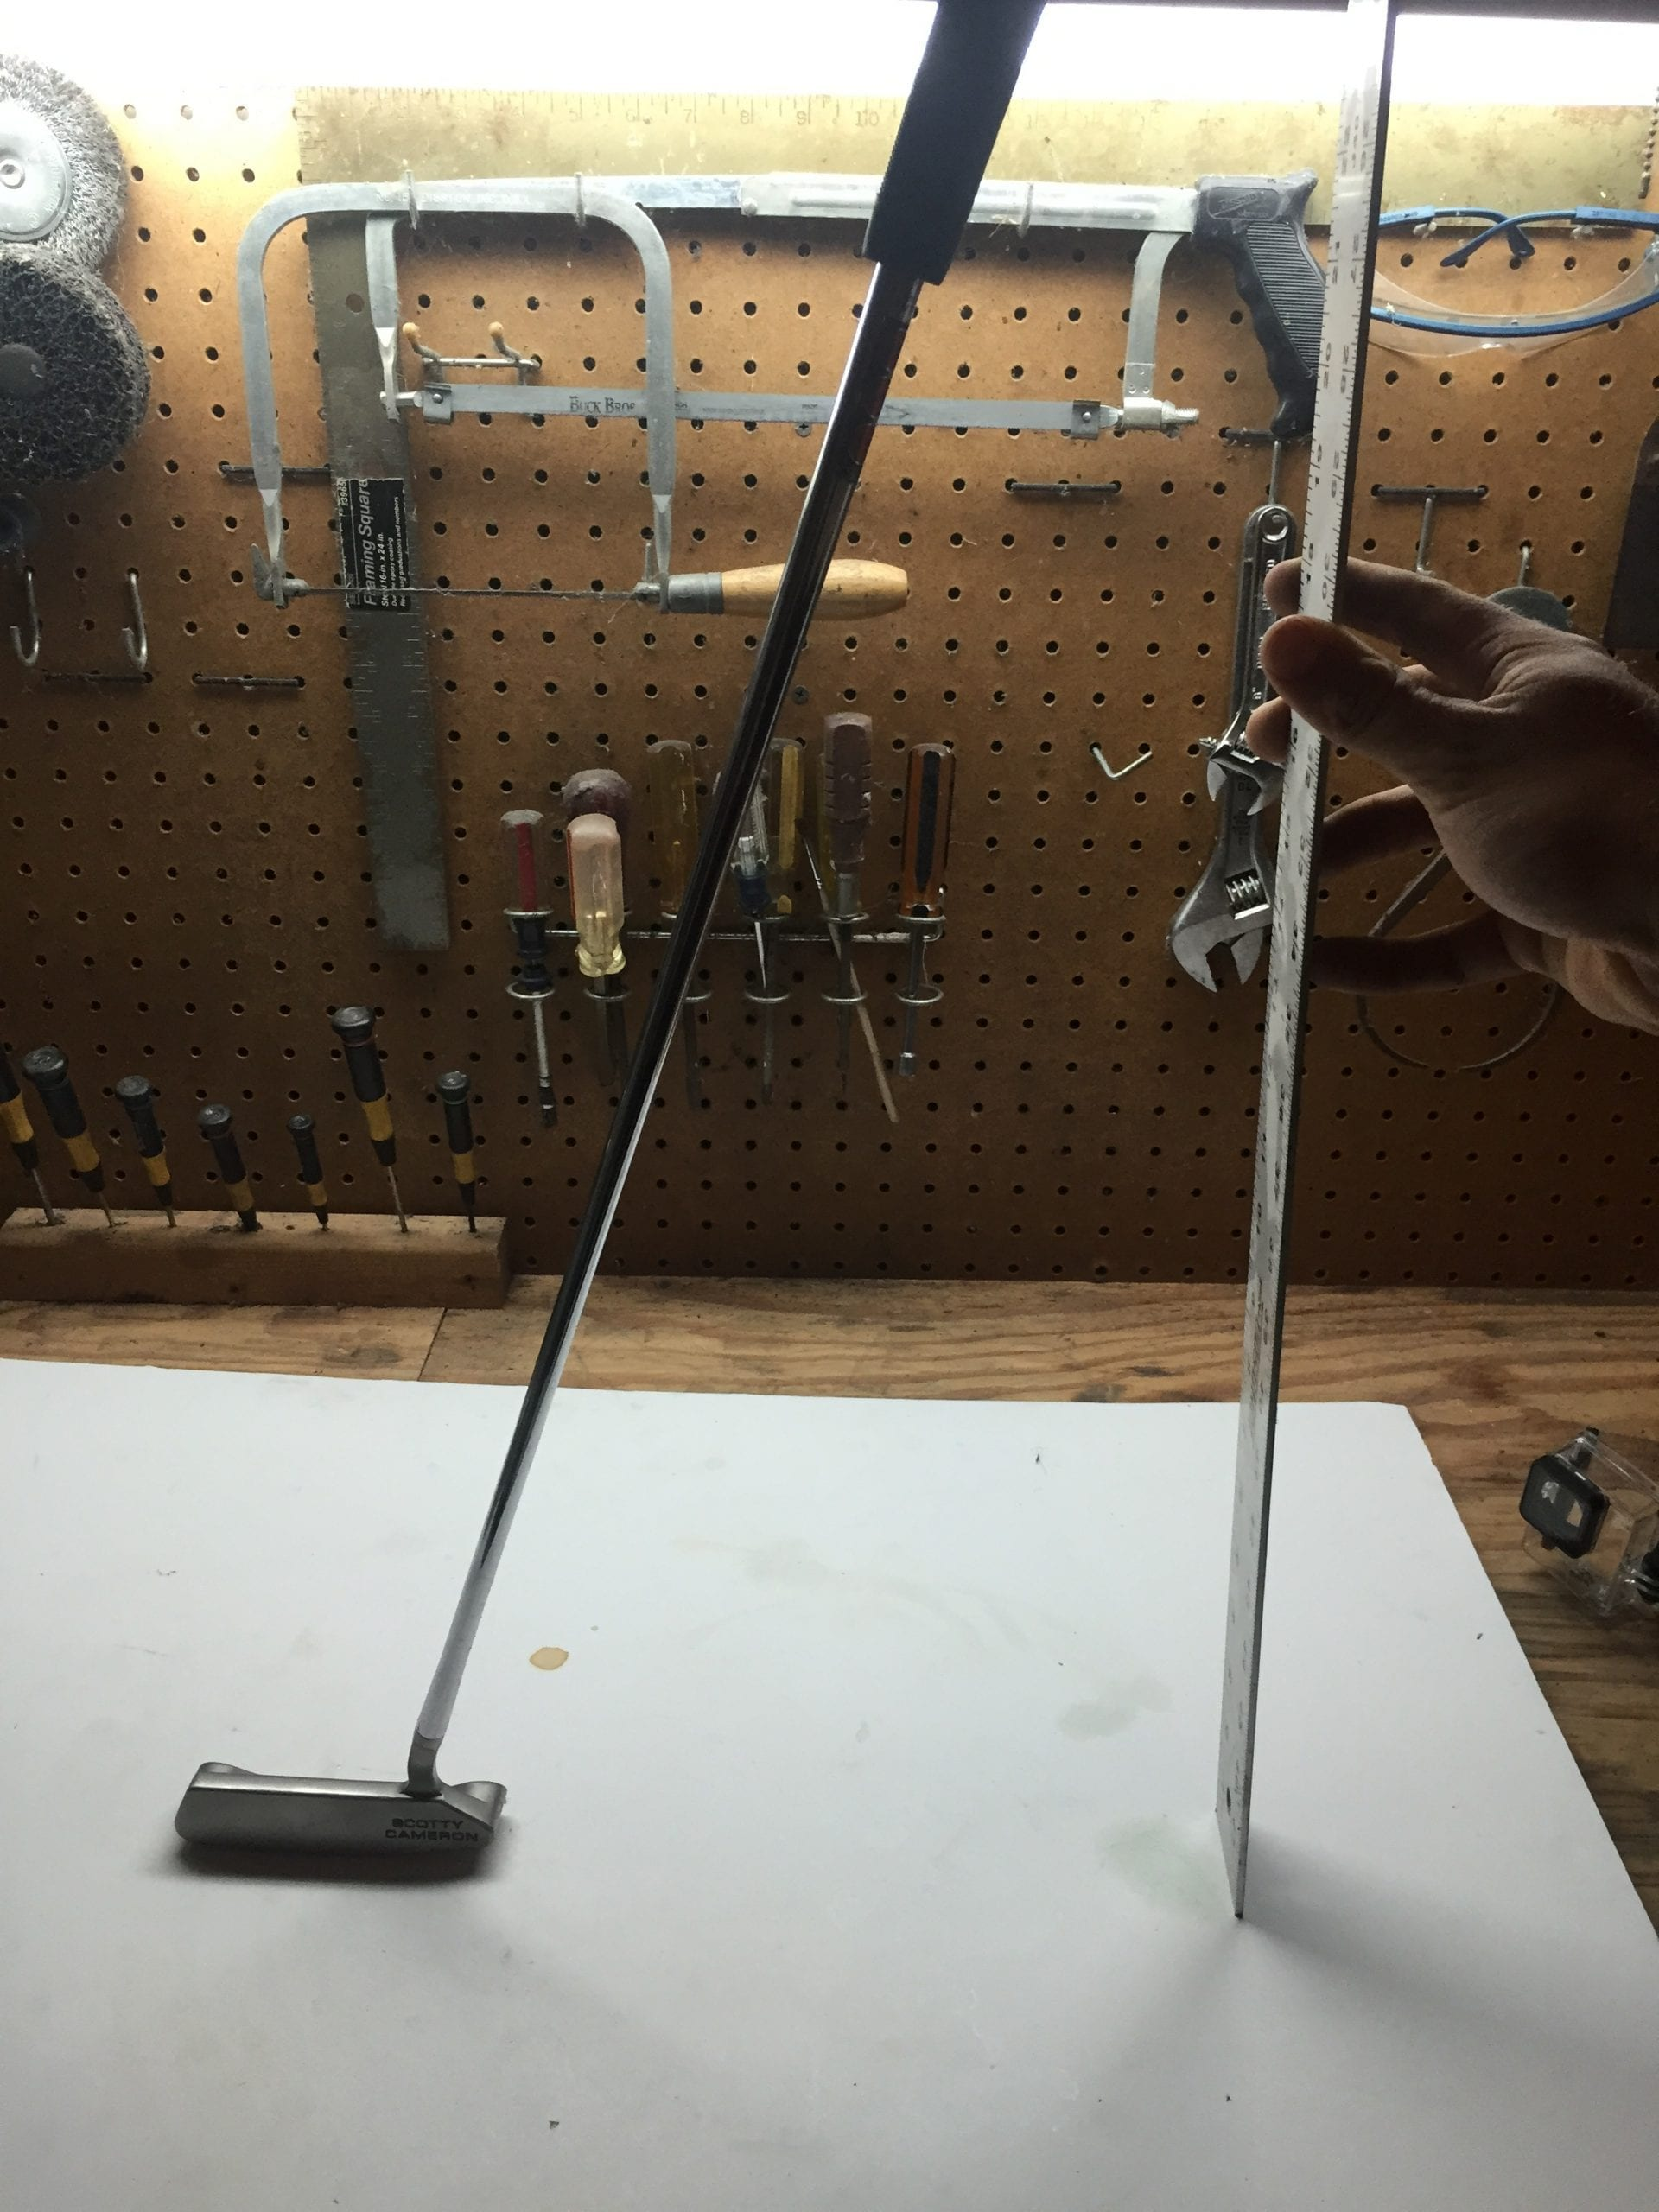 measuring the length of a putter